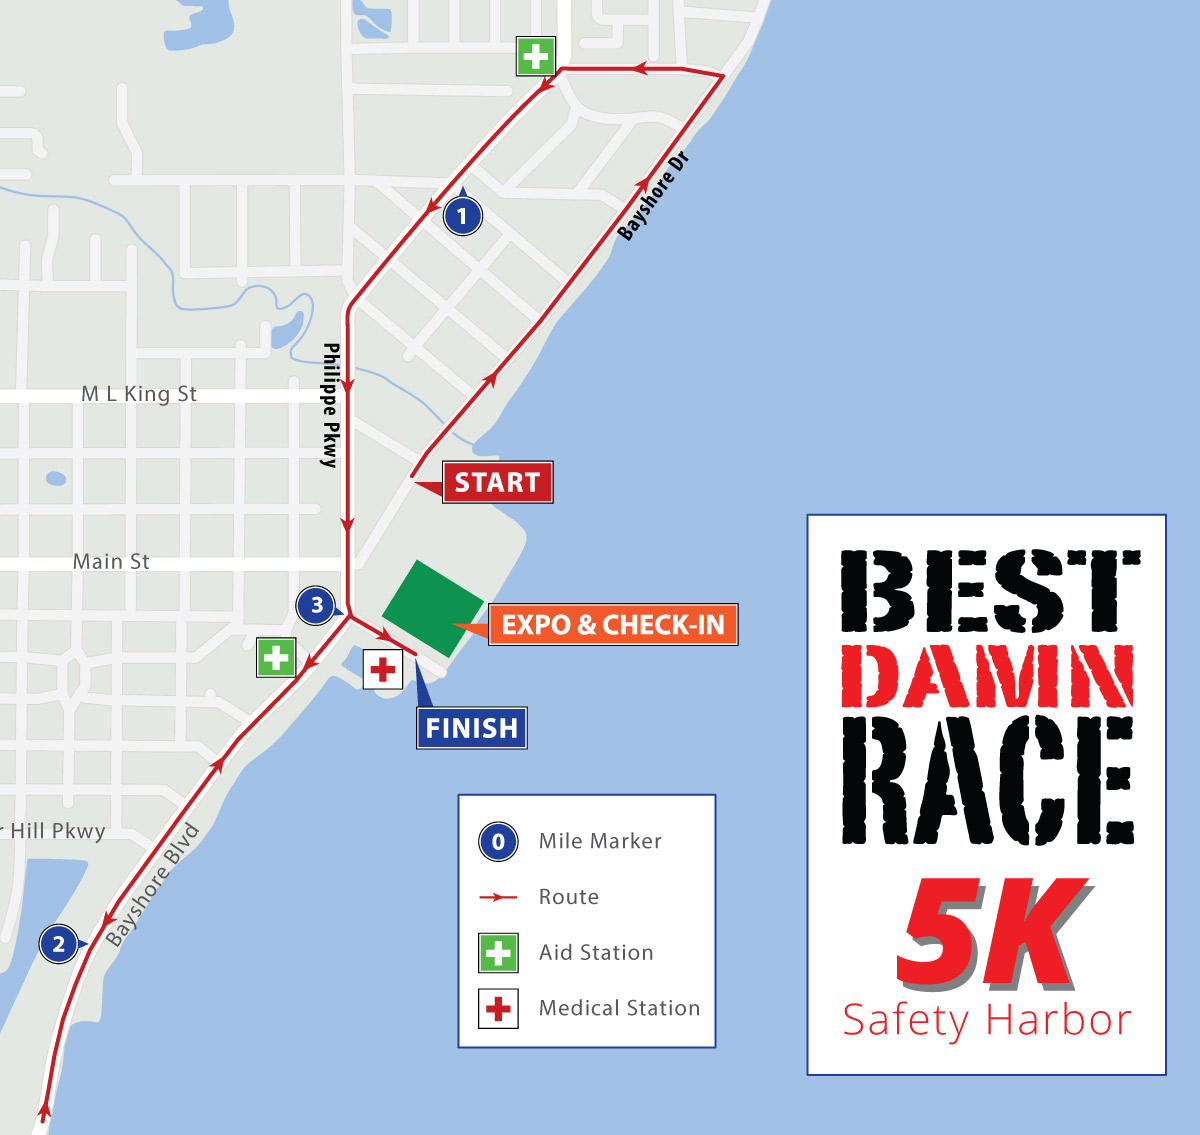 5K - Safety Harbor